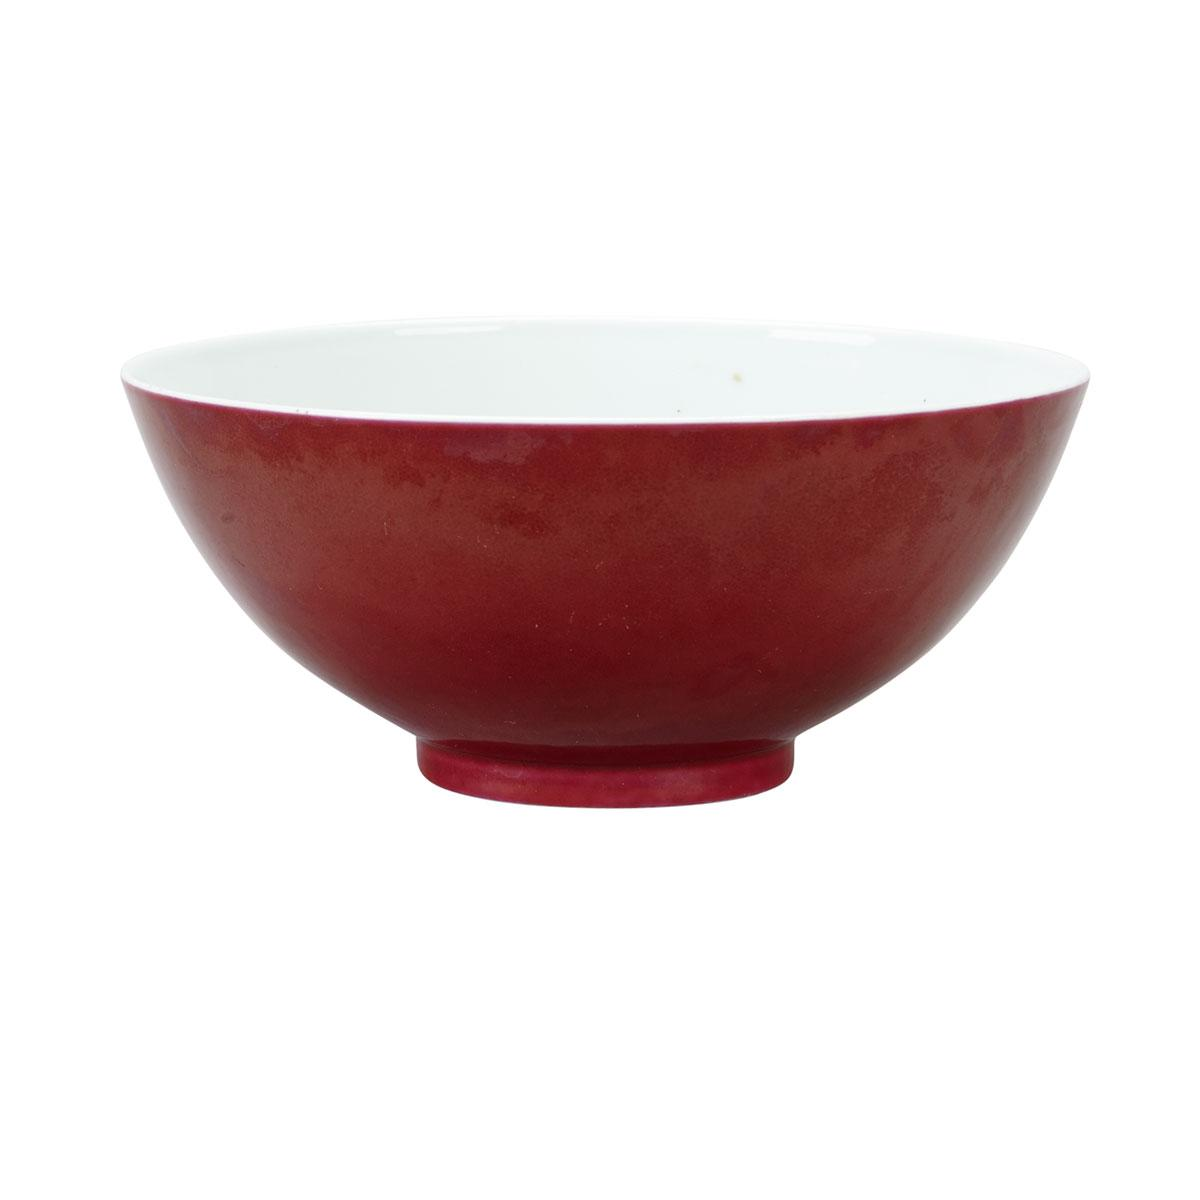 Copper Red Bowl, Guangxu Mark and Period (1875-1908)